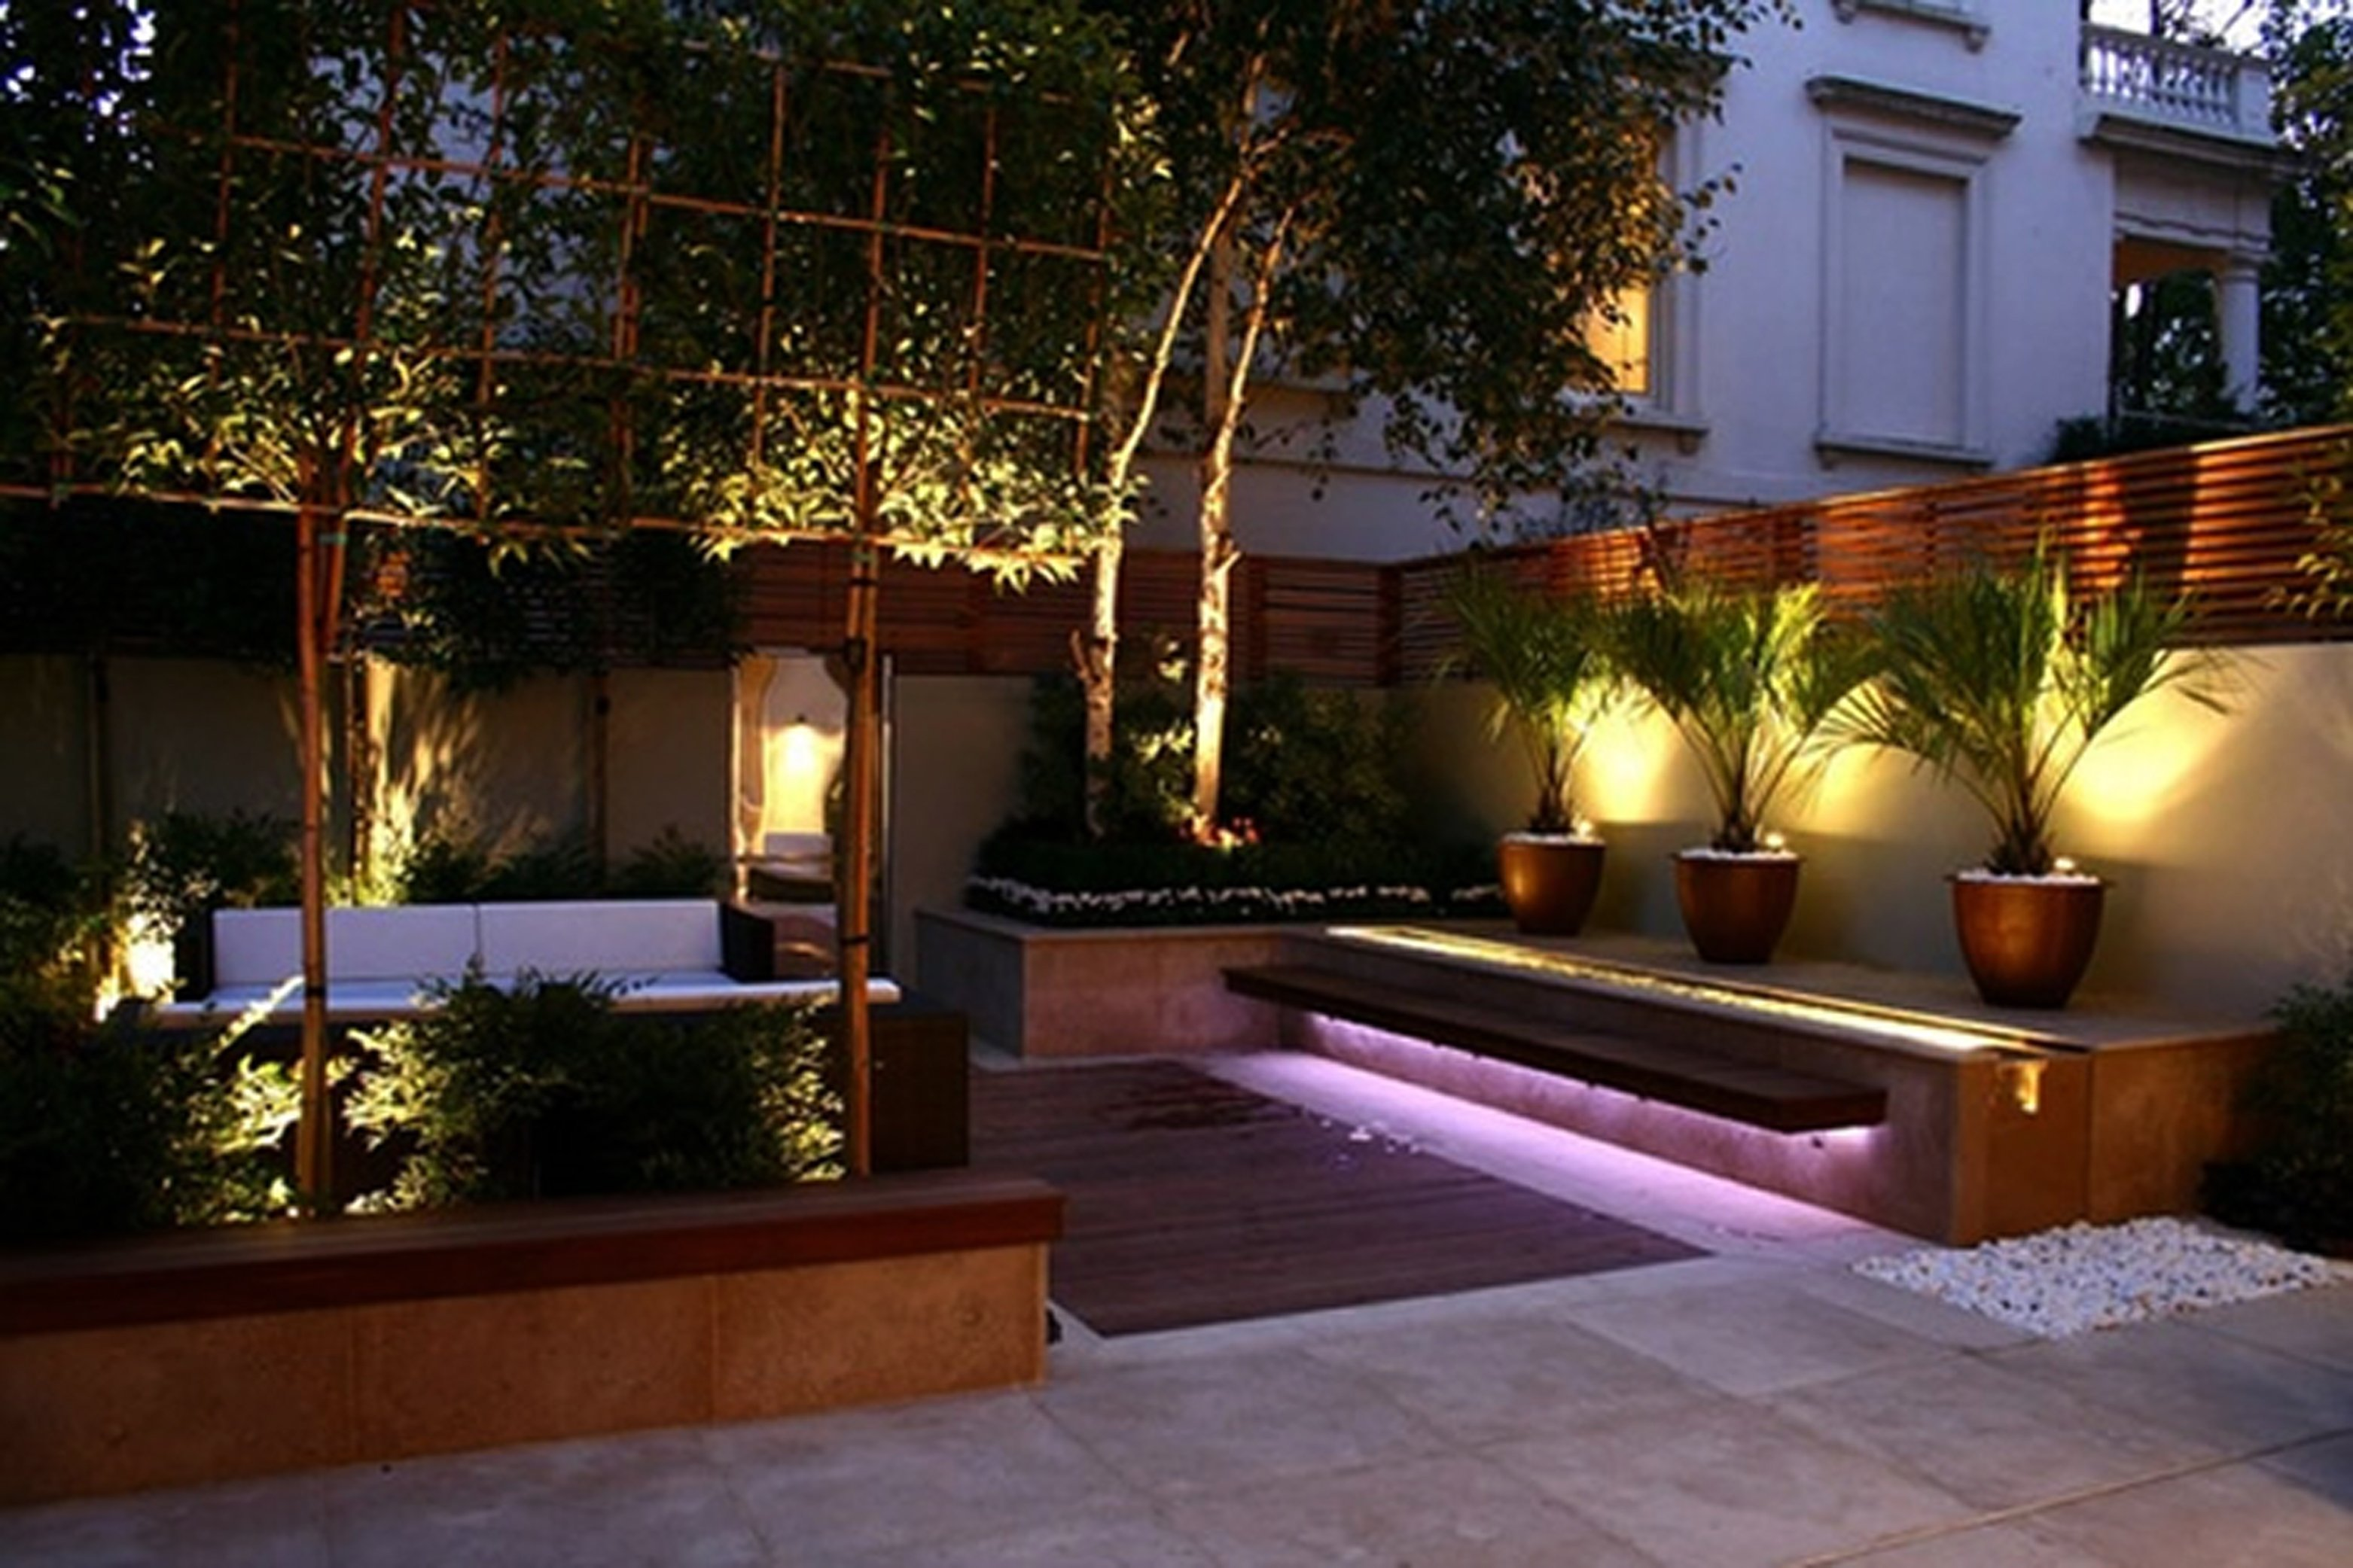 Ideas para decorar exteriores en primavera for Ideas de jardines exteriores